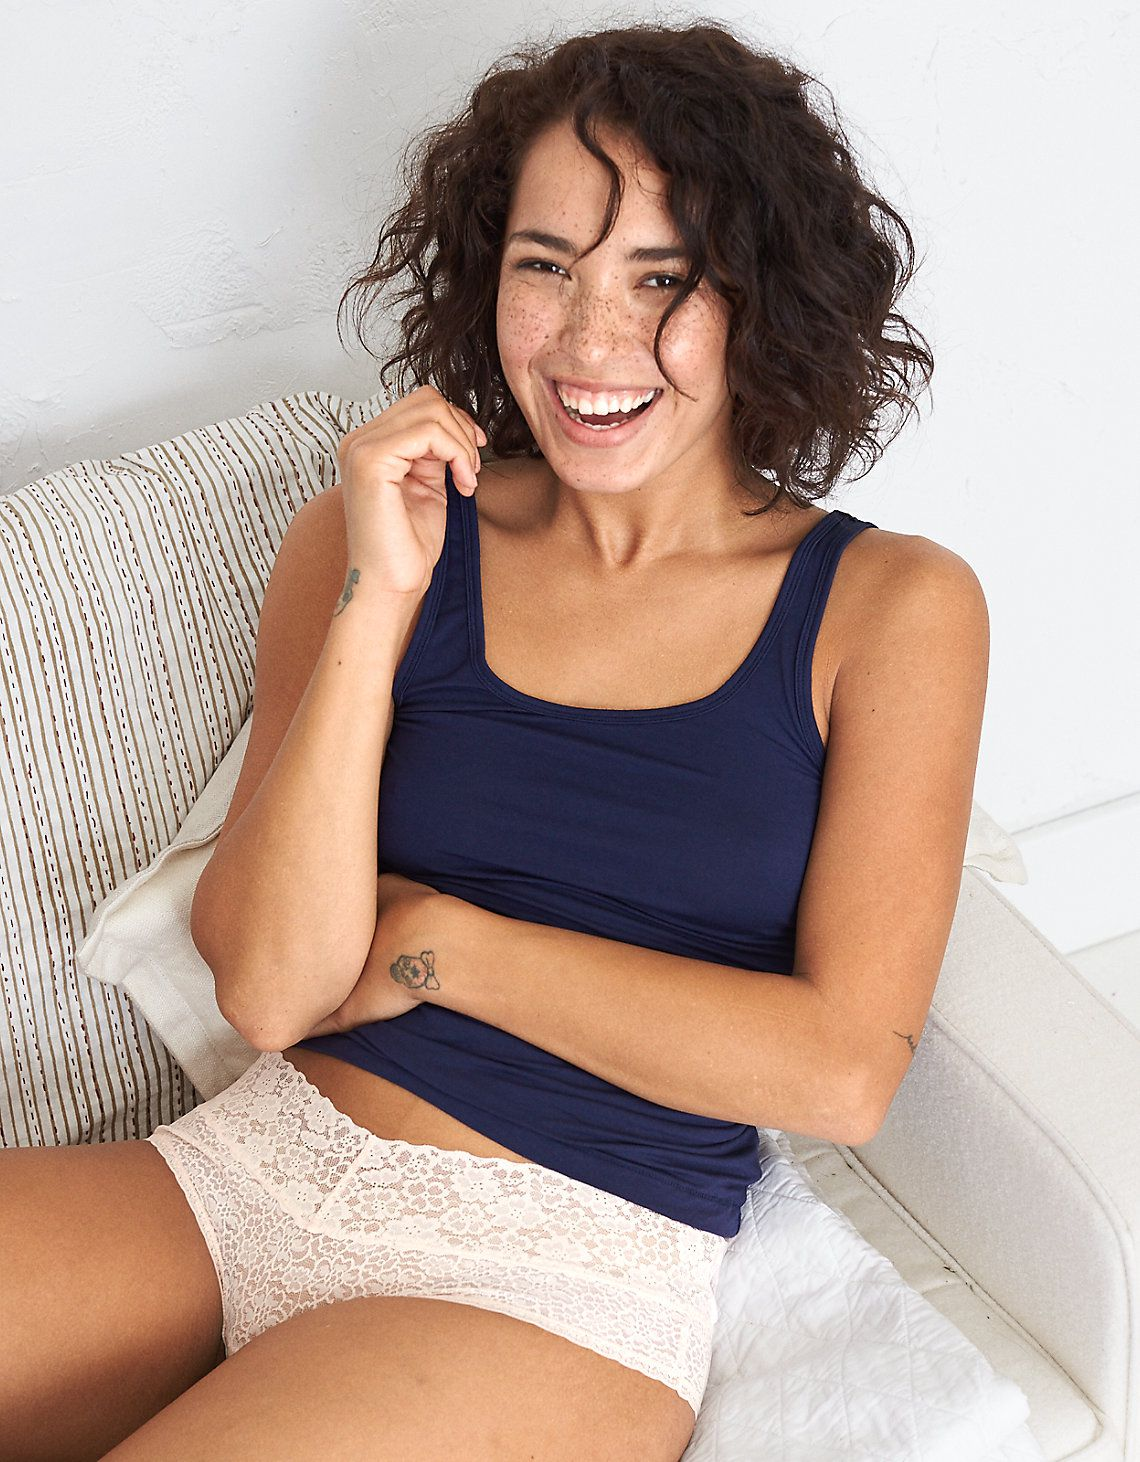 A model in a tank top and lace underwear